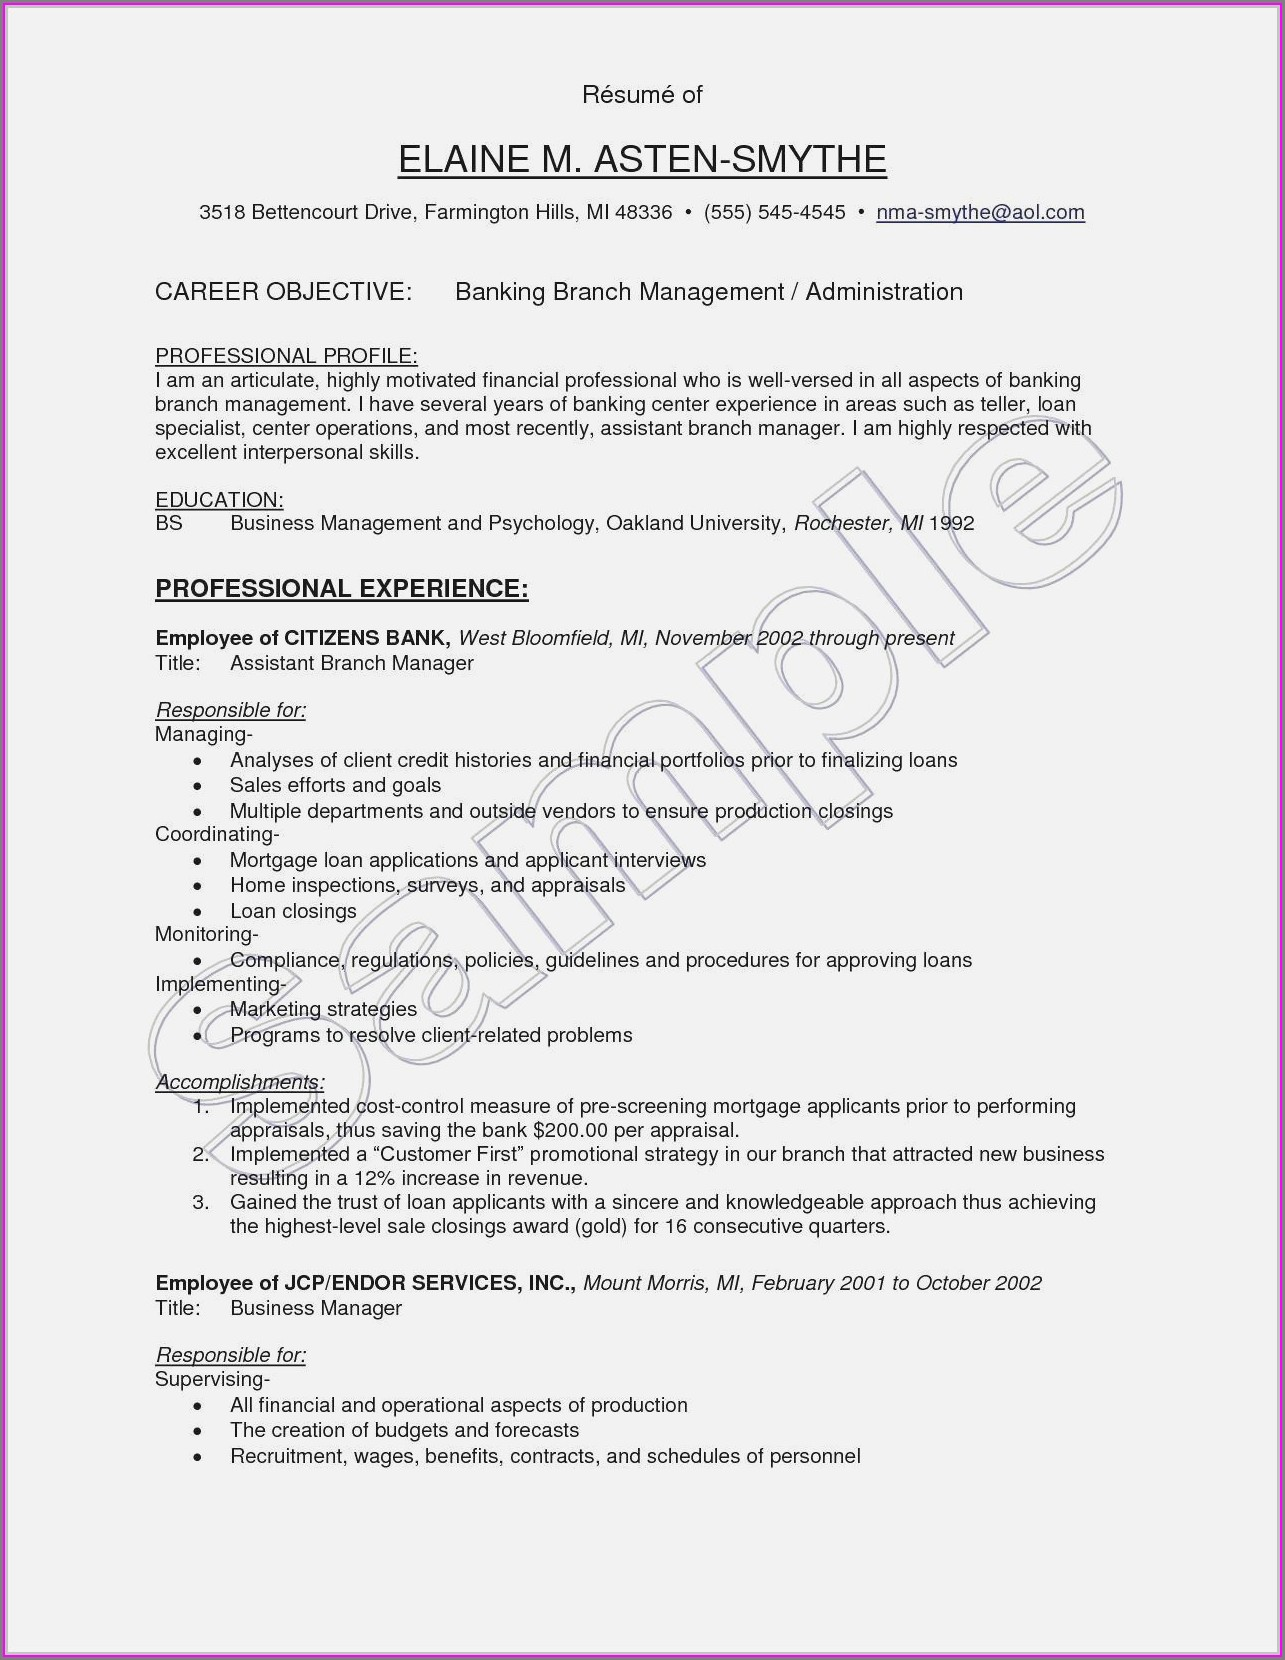 Resume Format For Executives